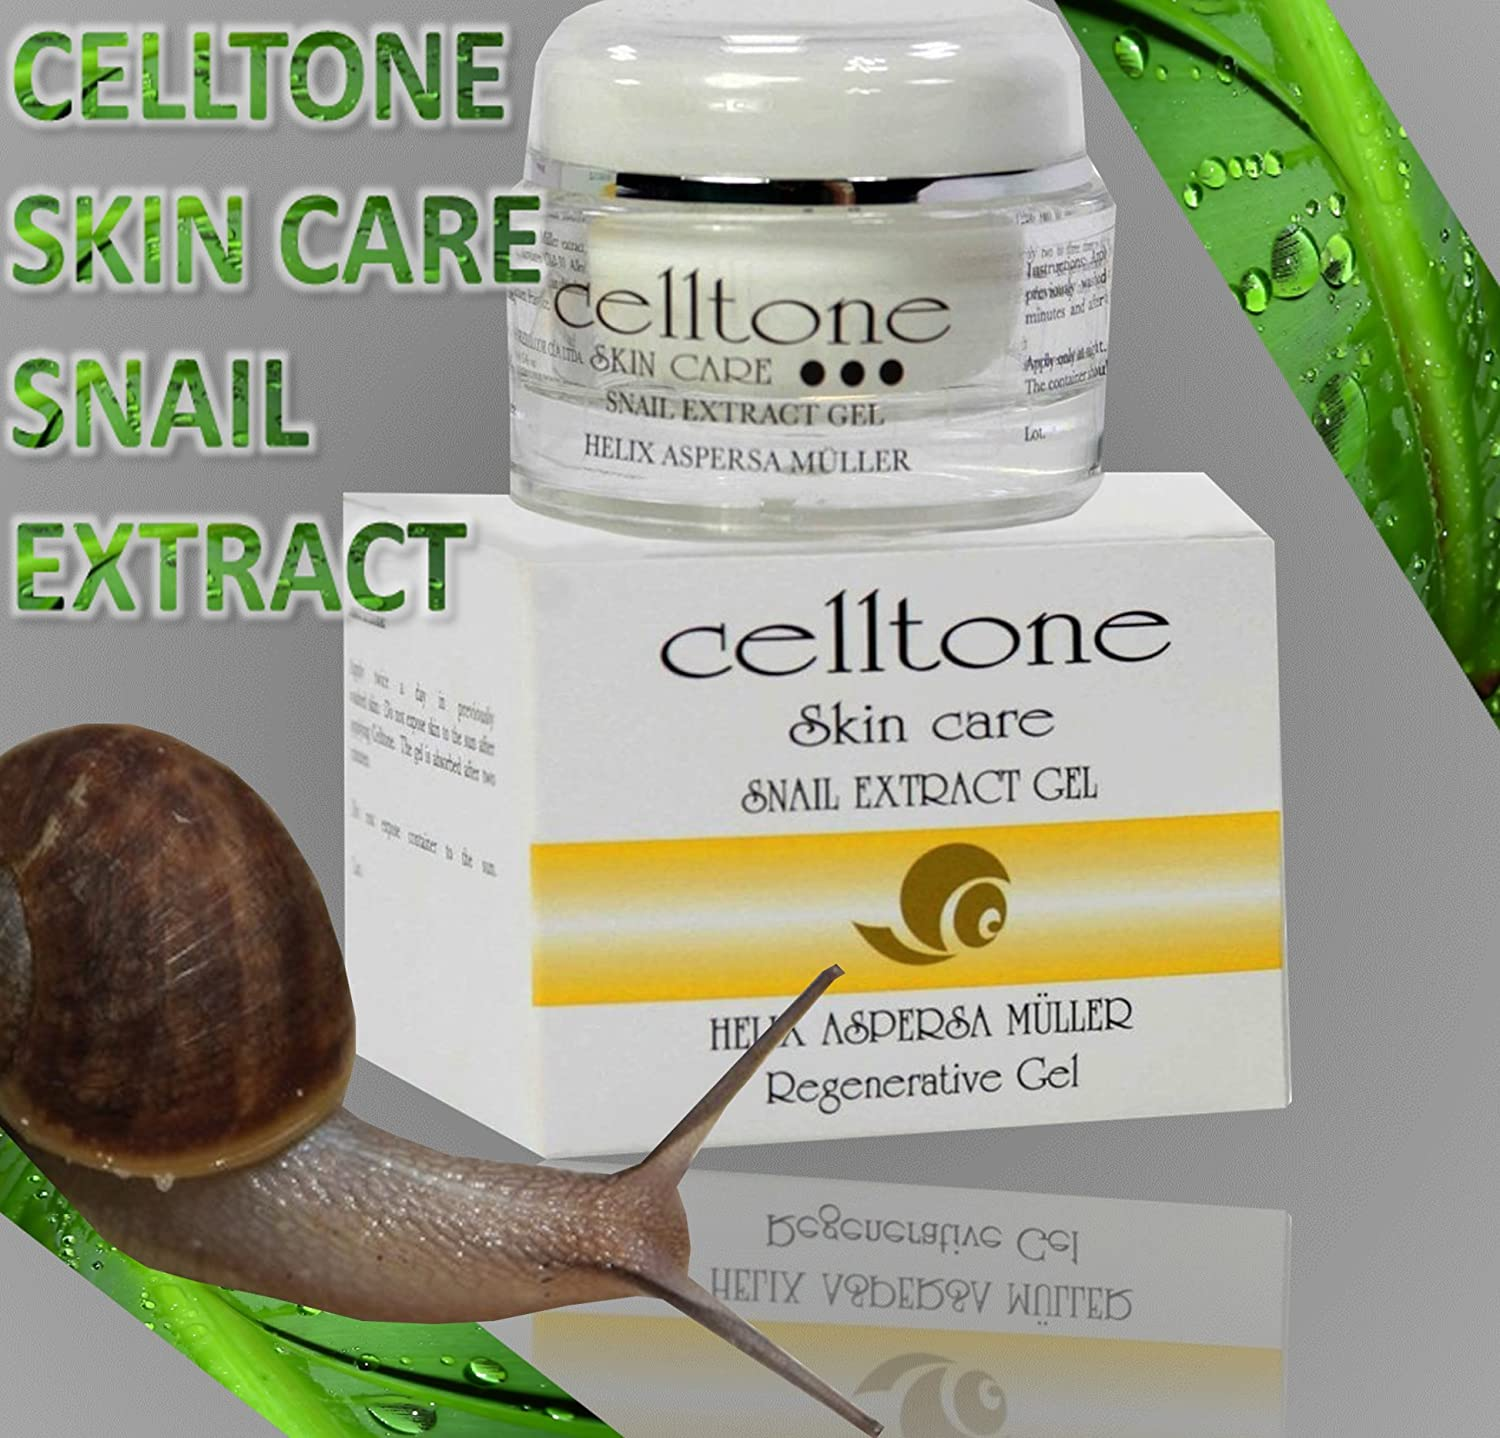 2 Celltone Baba De Caracol Snail Gel 100% Original Helix Aspersa Muller by 100% ORIGINAL: Amazon.es: Belleza